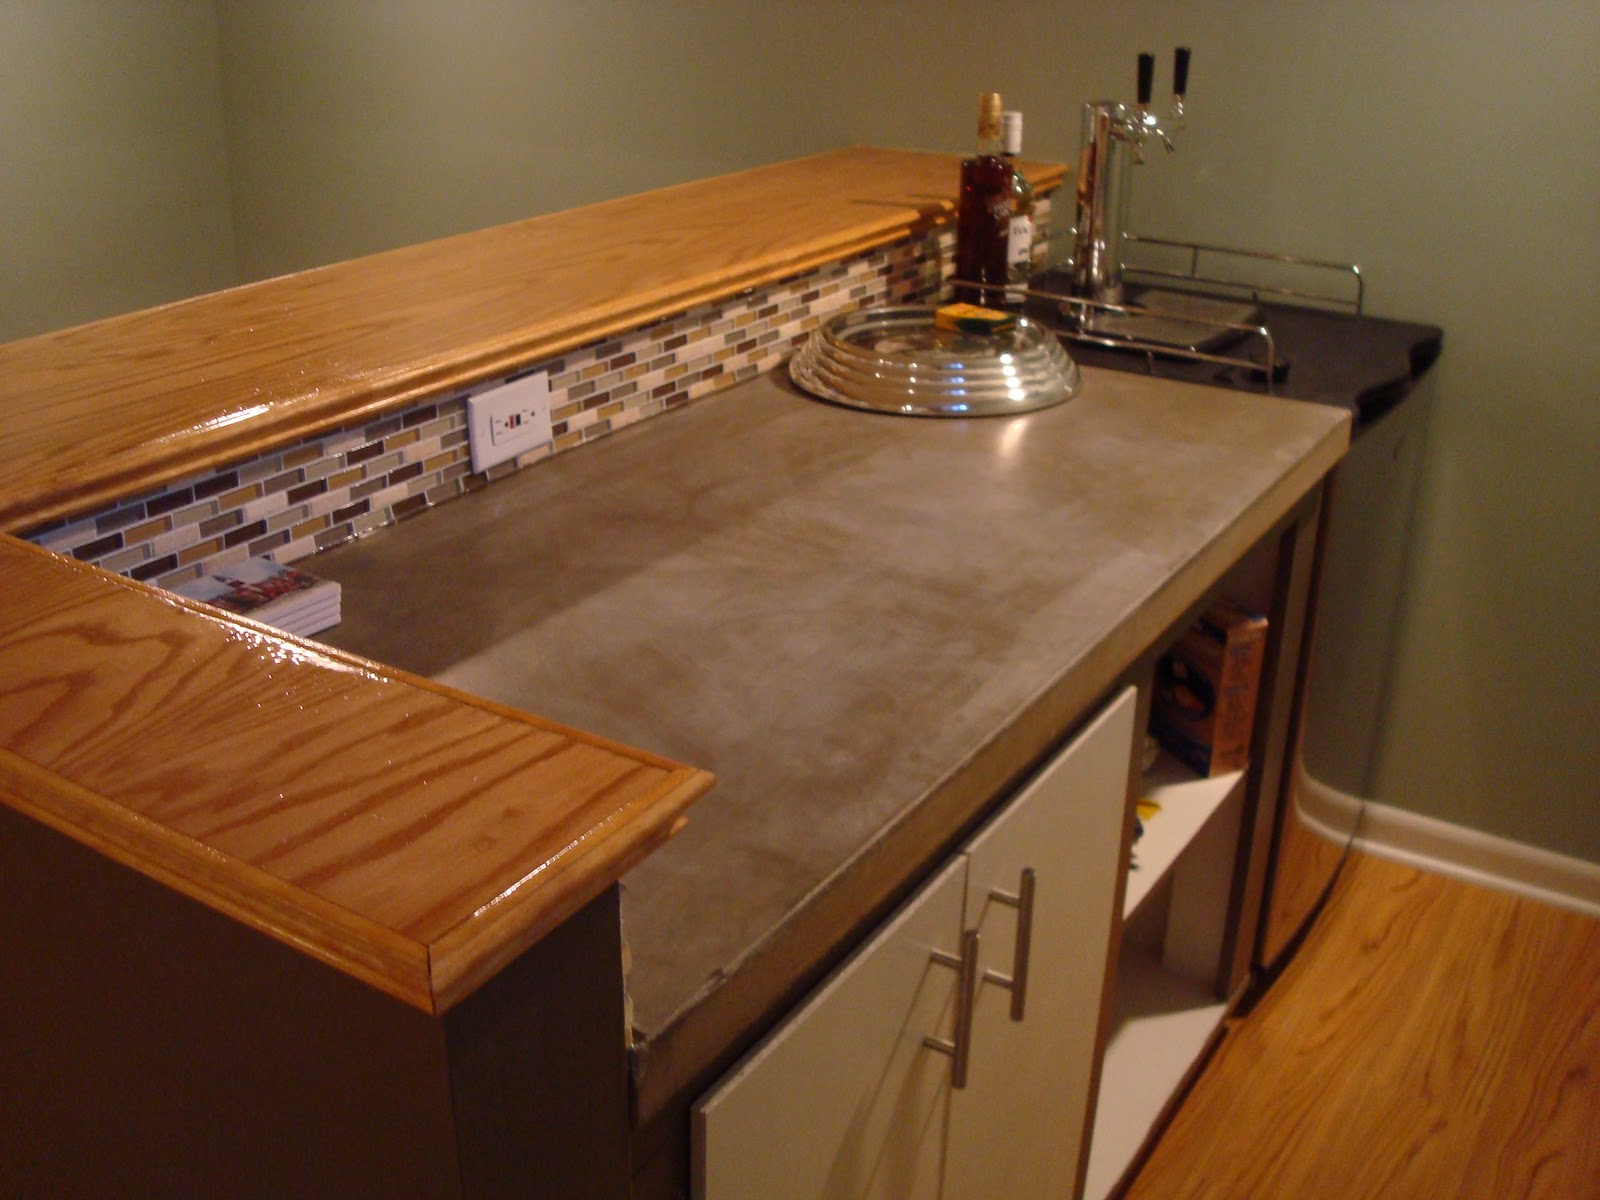 Basement Renovation: A Wet Before To A